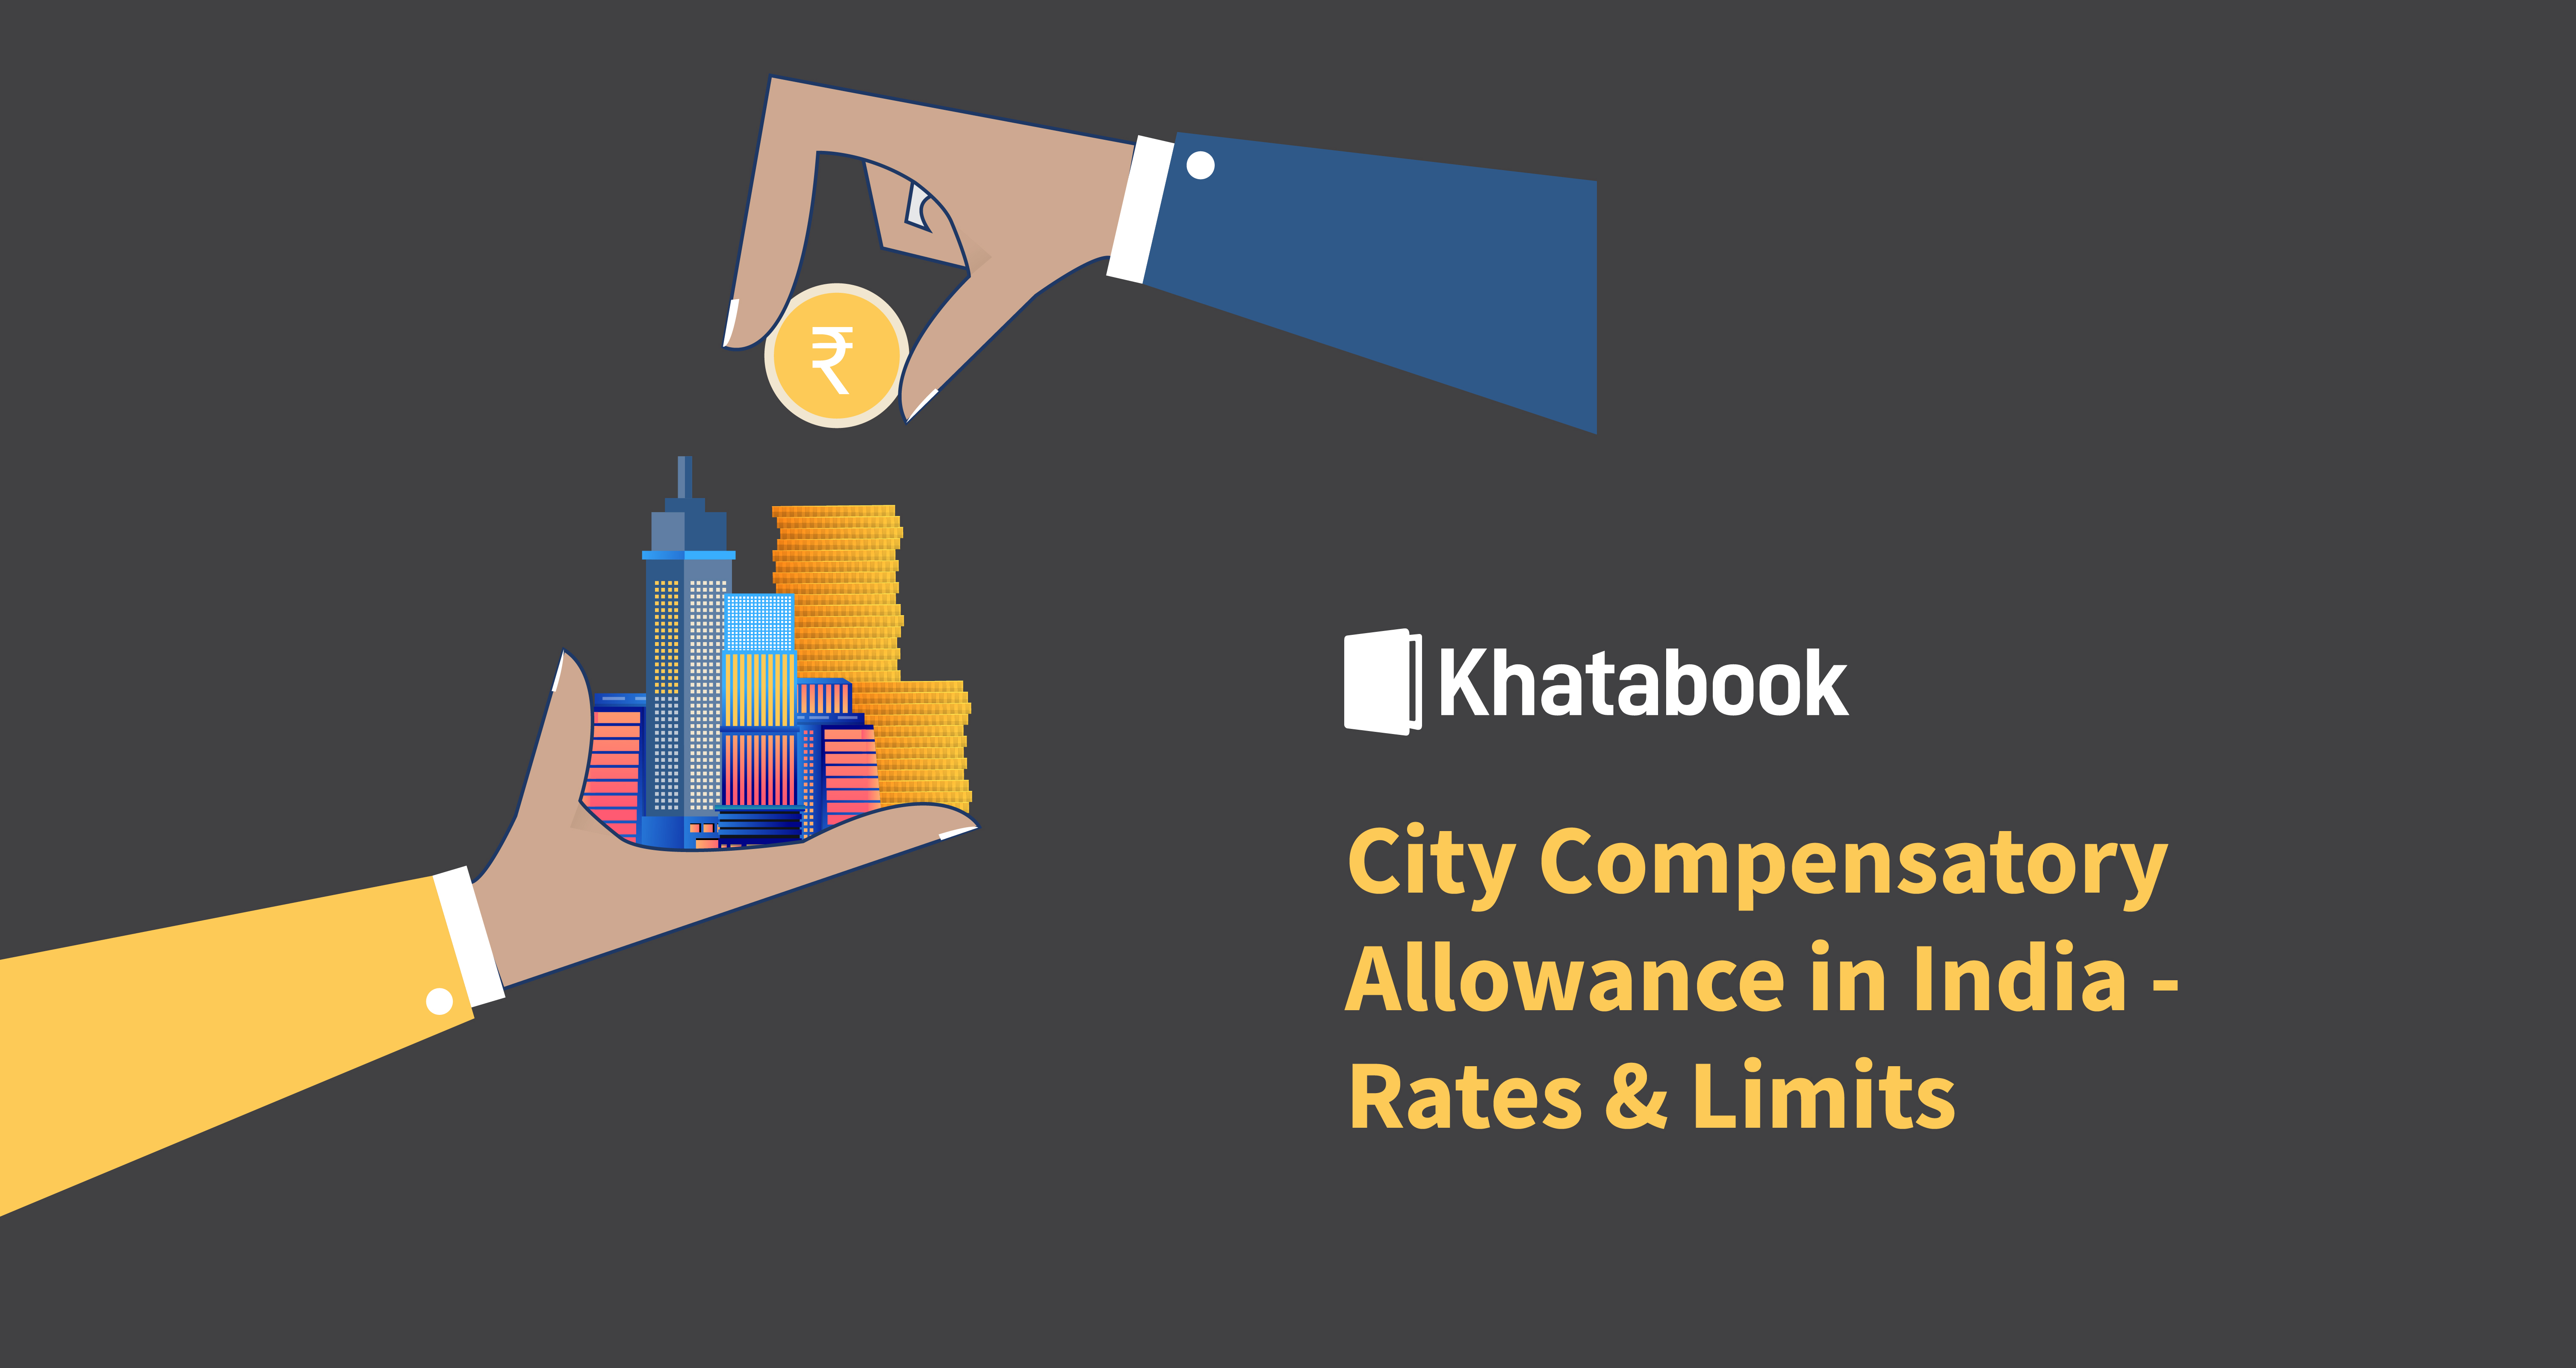 City Compensatory Allowance in India - Rates & Limits